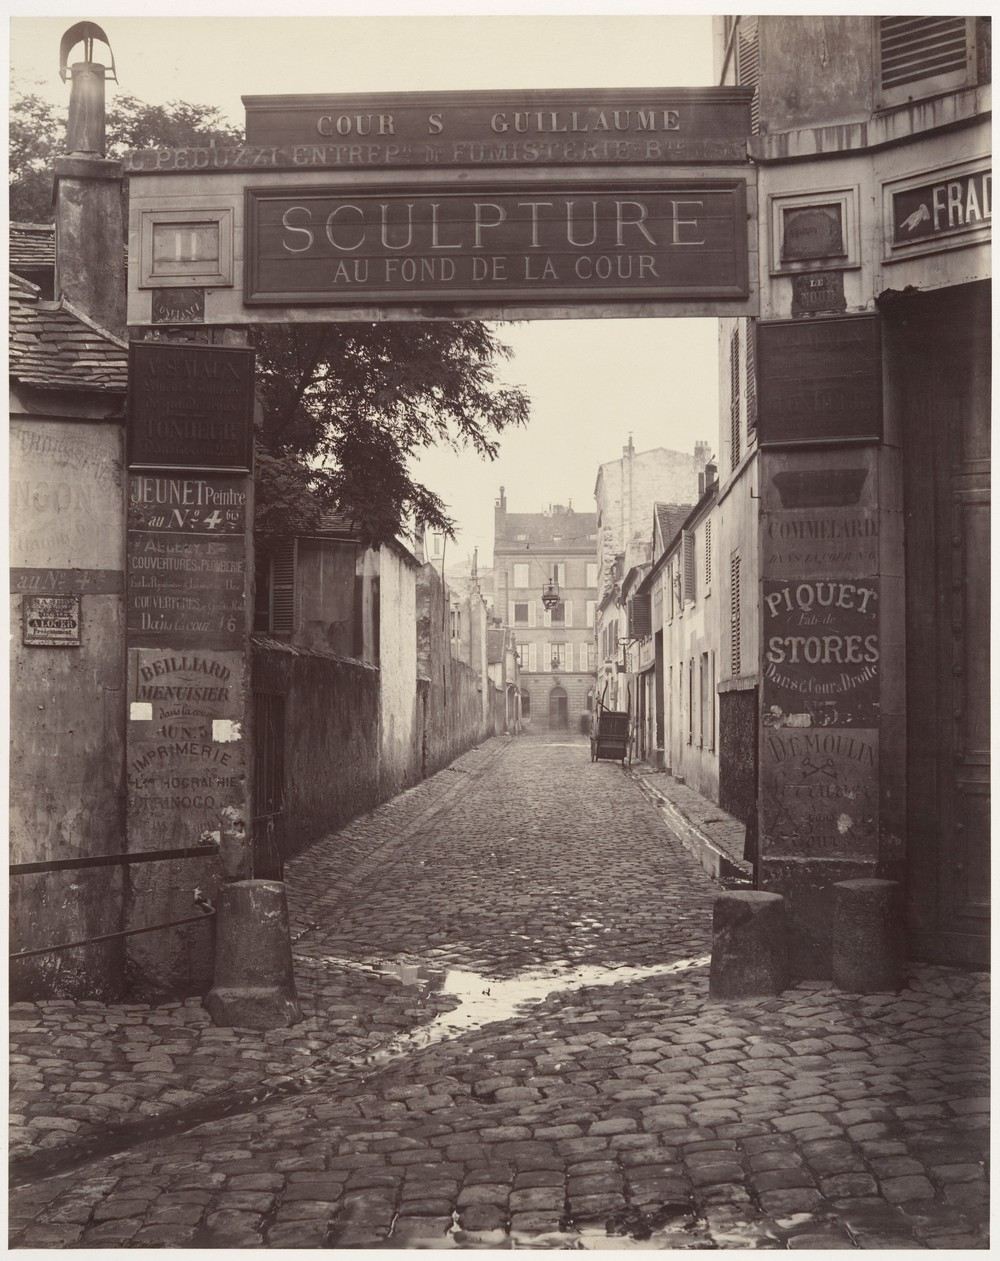 Sparkling sewage in Cour Saint-Guillaume, 1865.